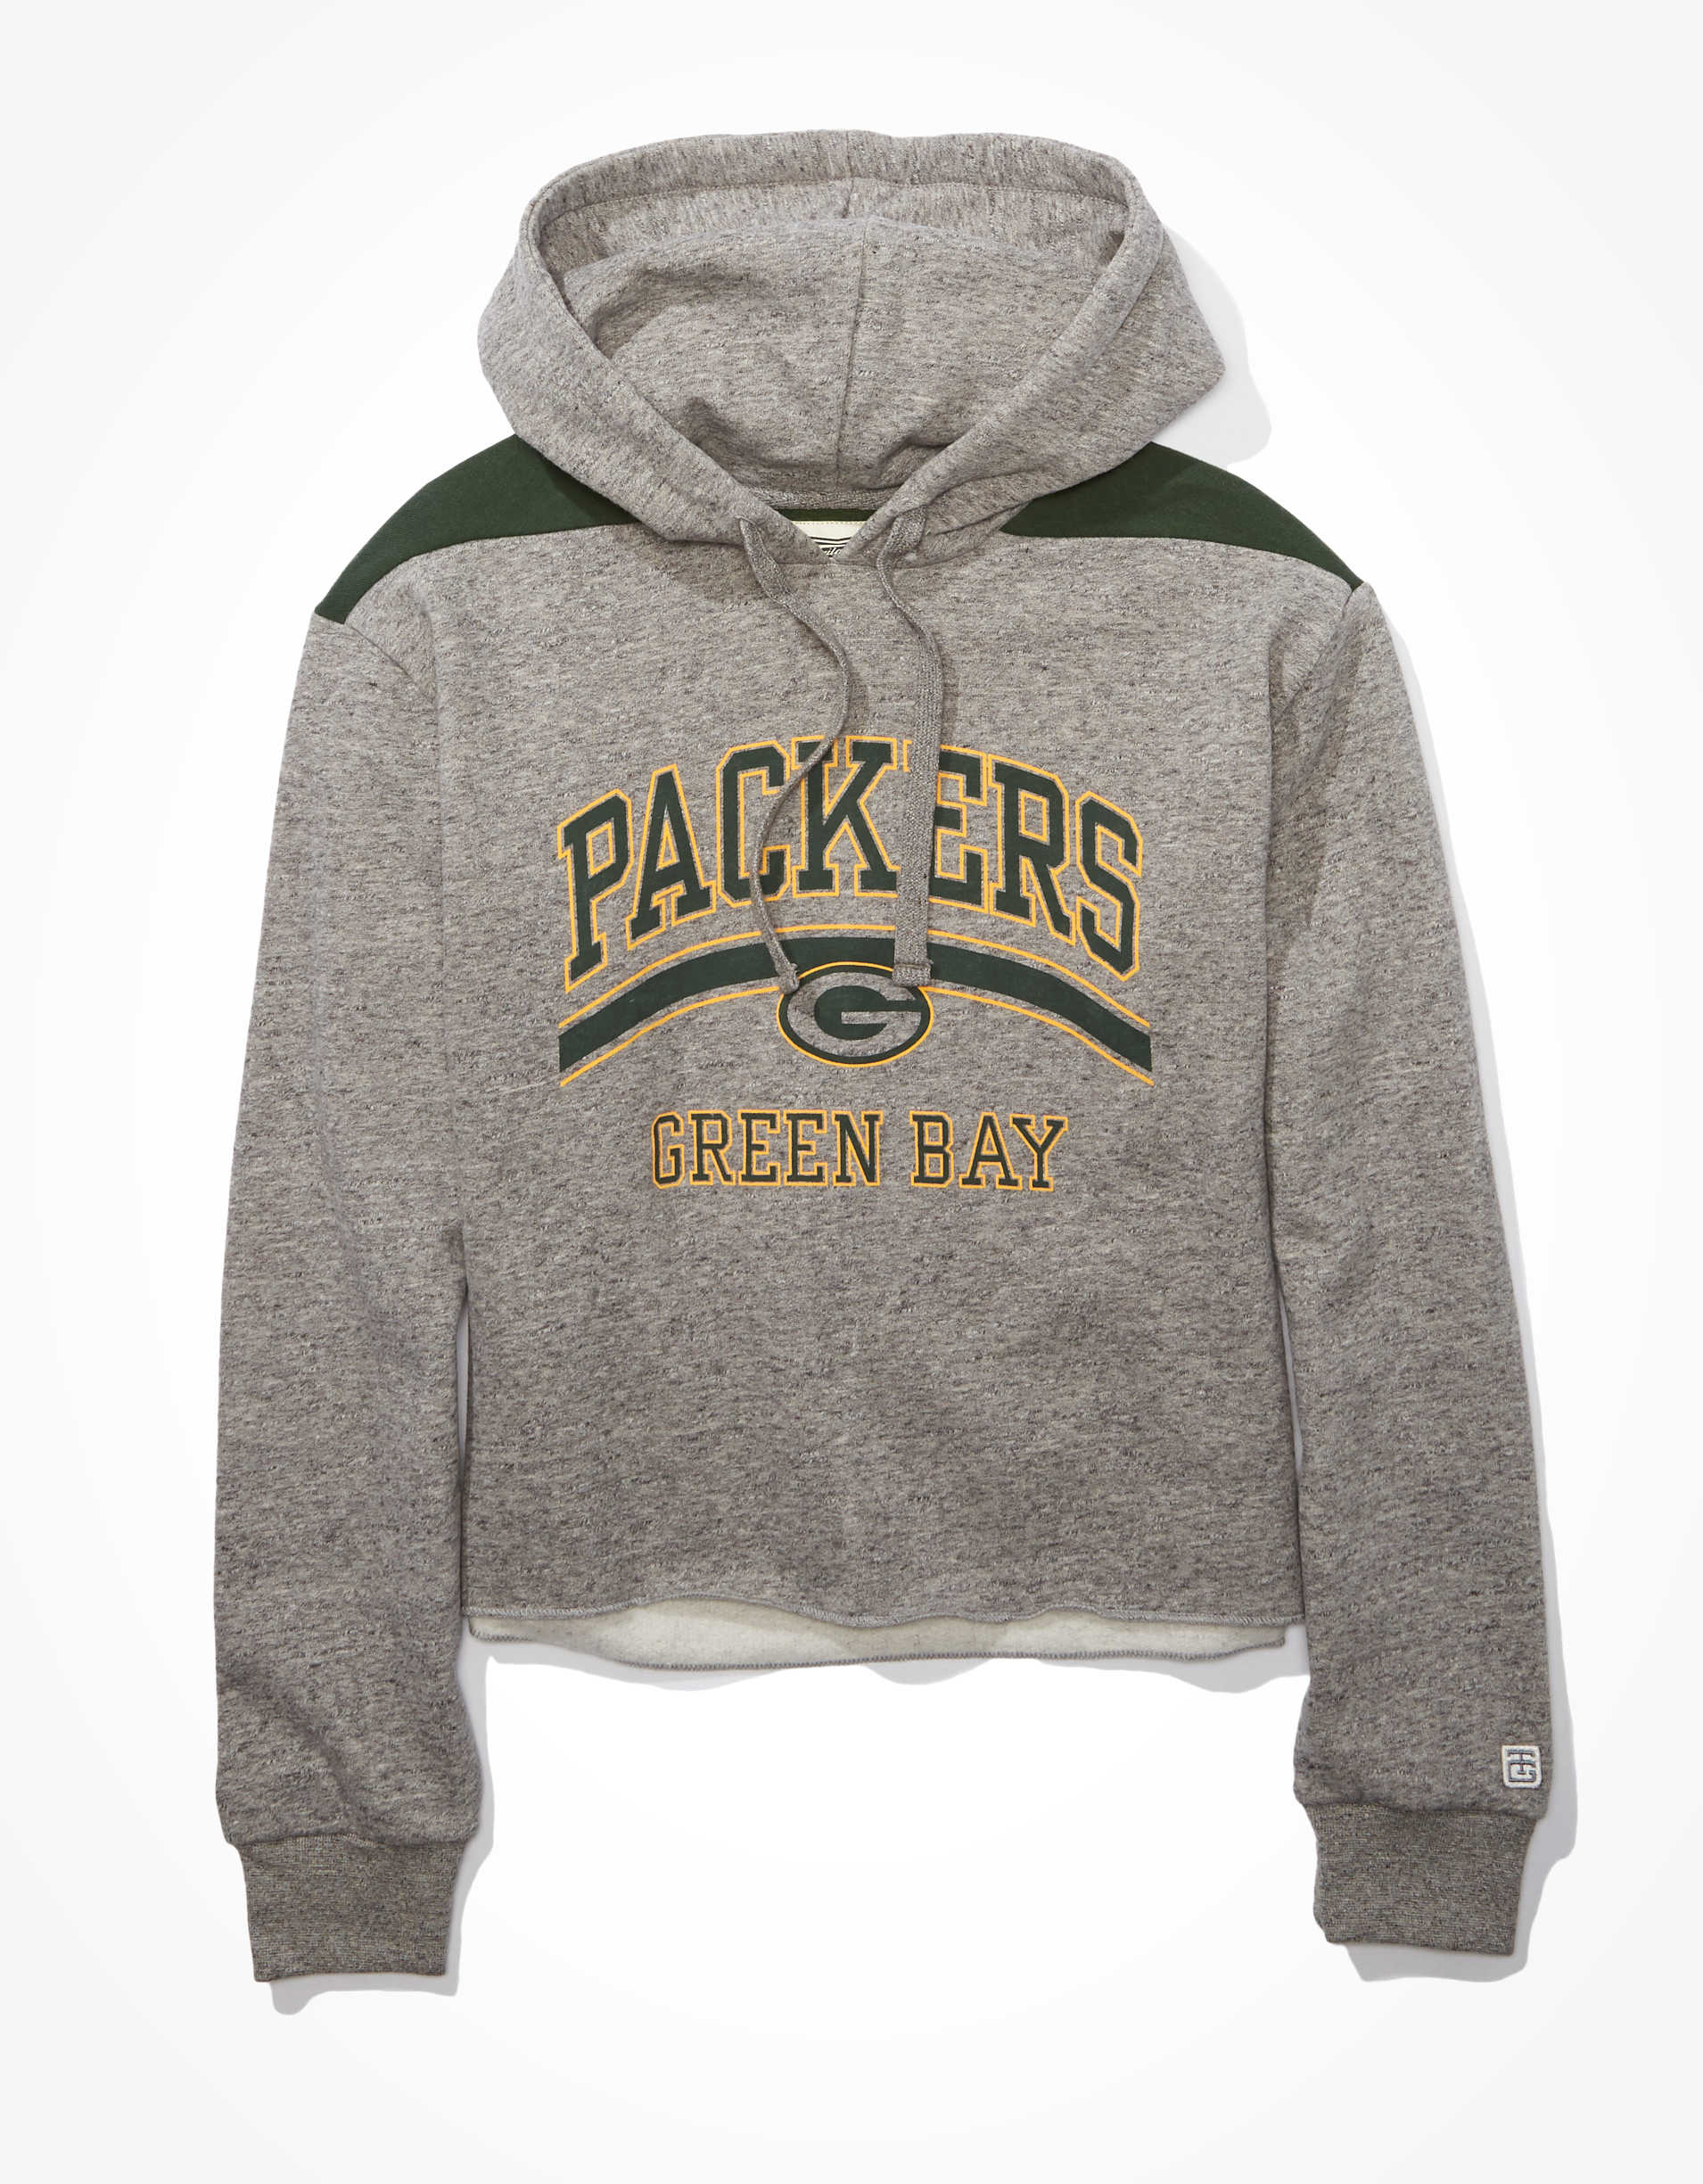 Tailgate Women's Green Bay Packers Cropped Hoodie